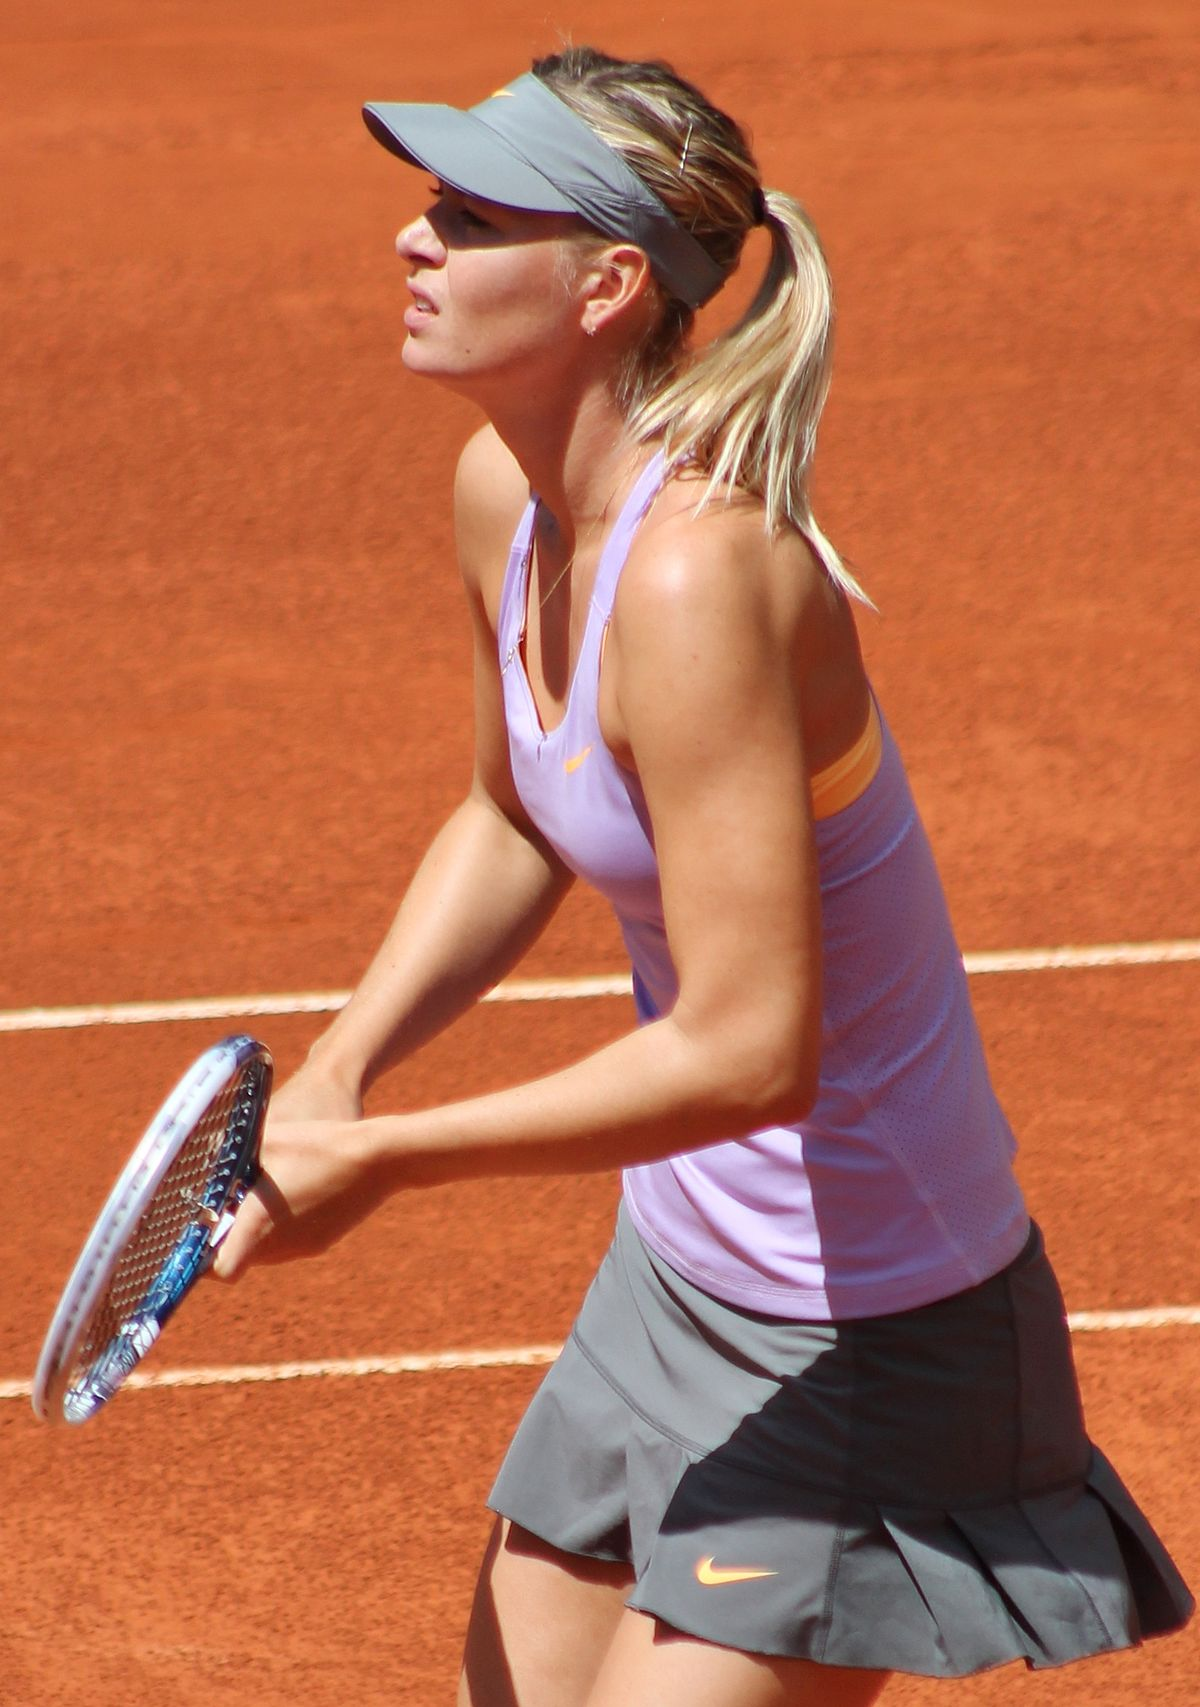 Maria Sharapova 5 Grand Slam singles titles